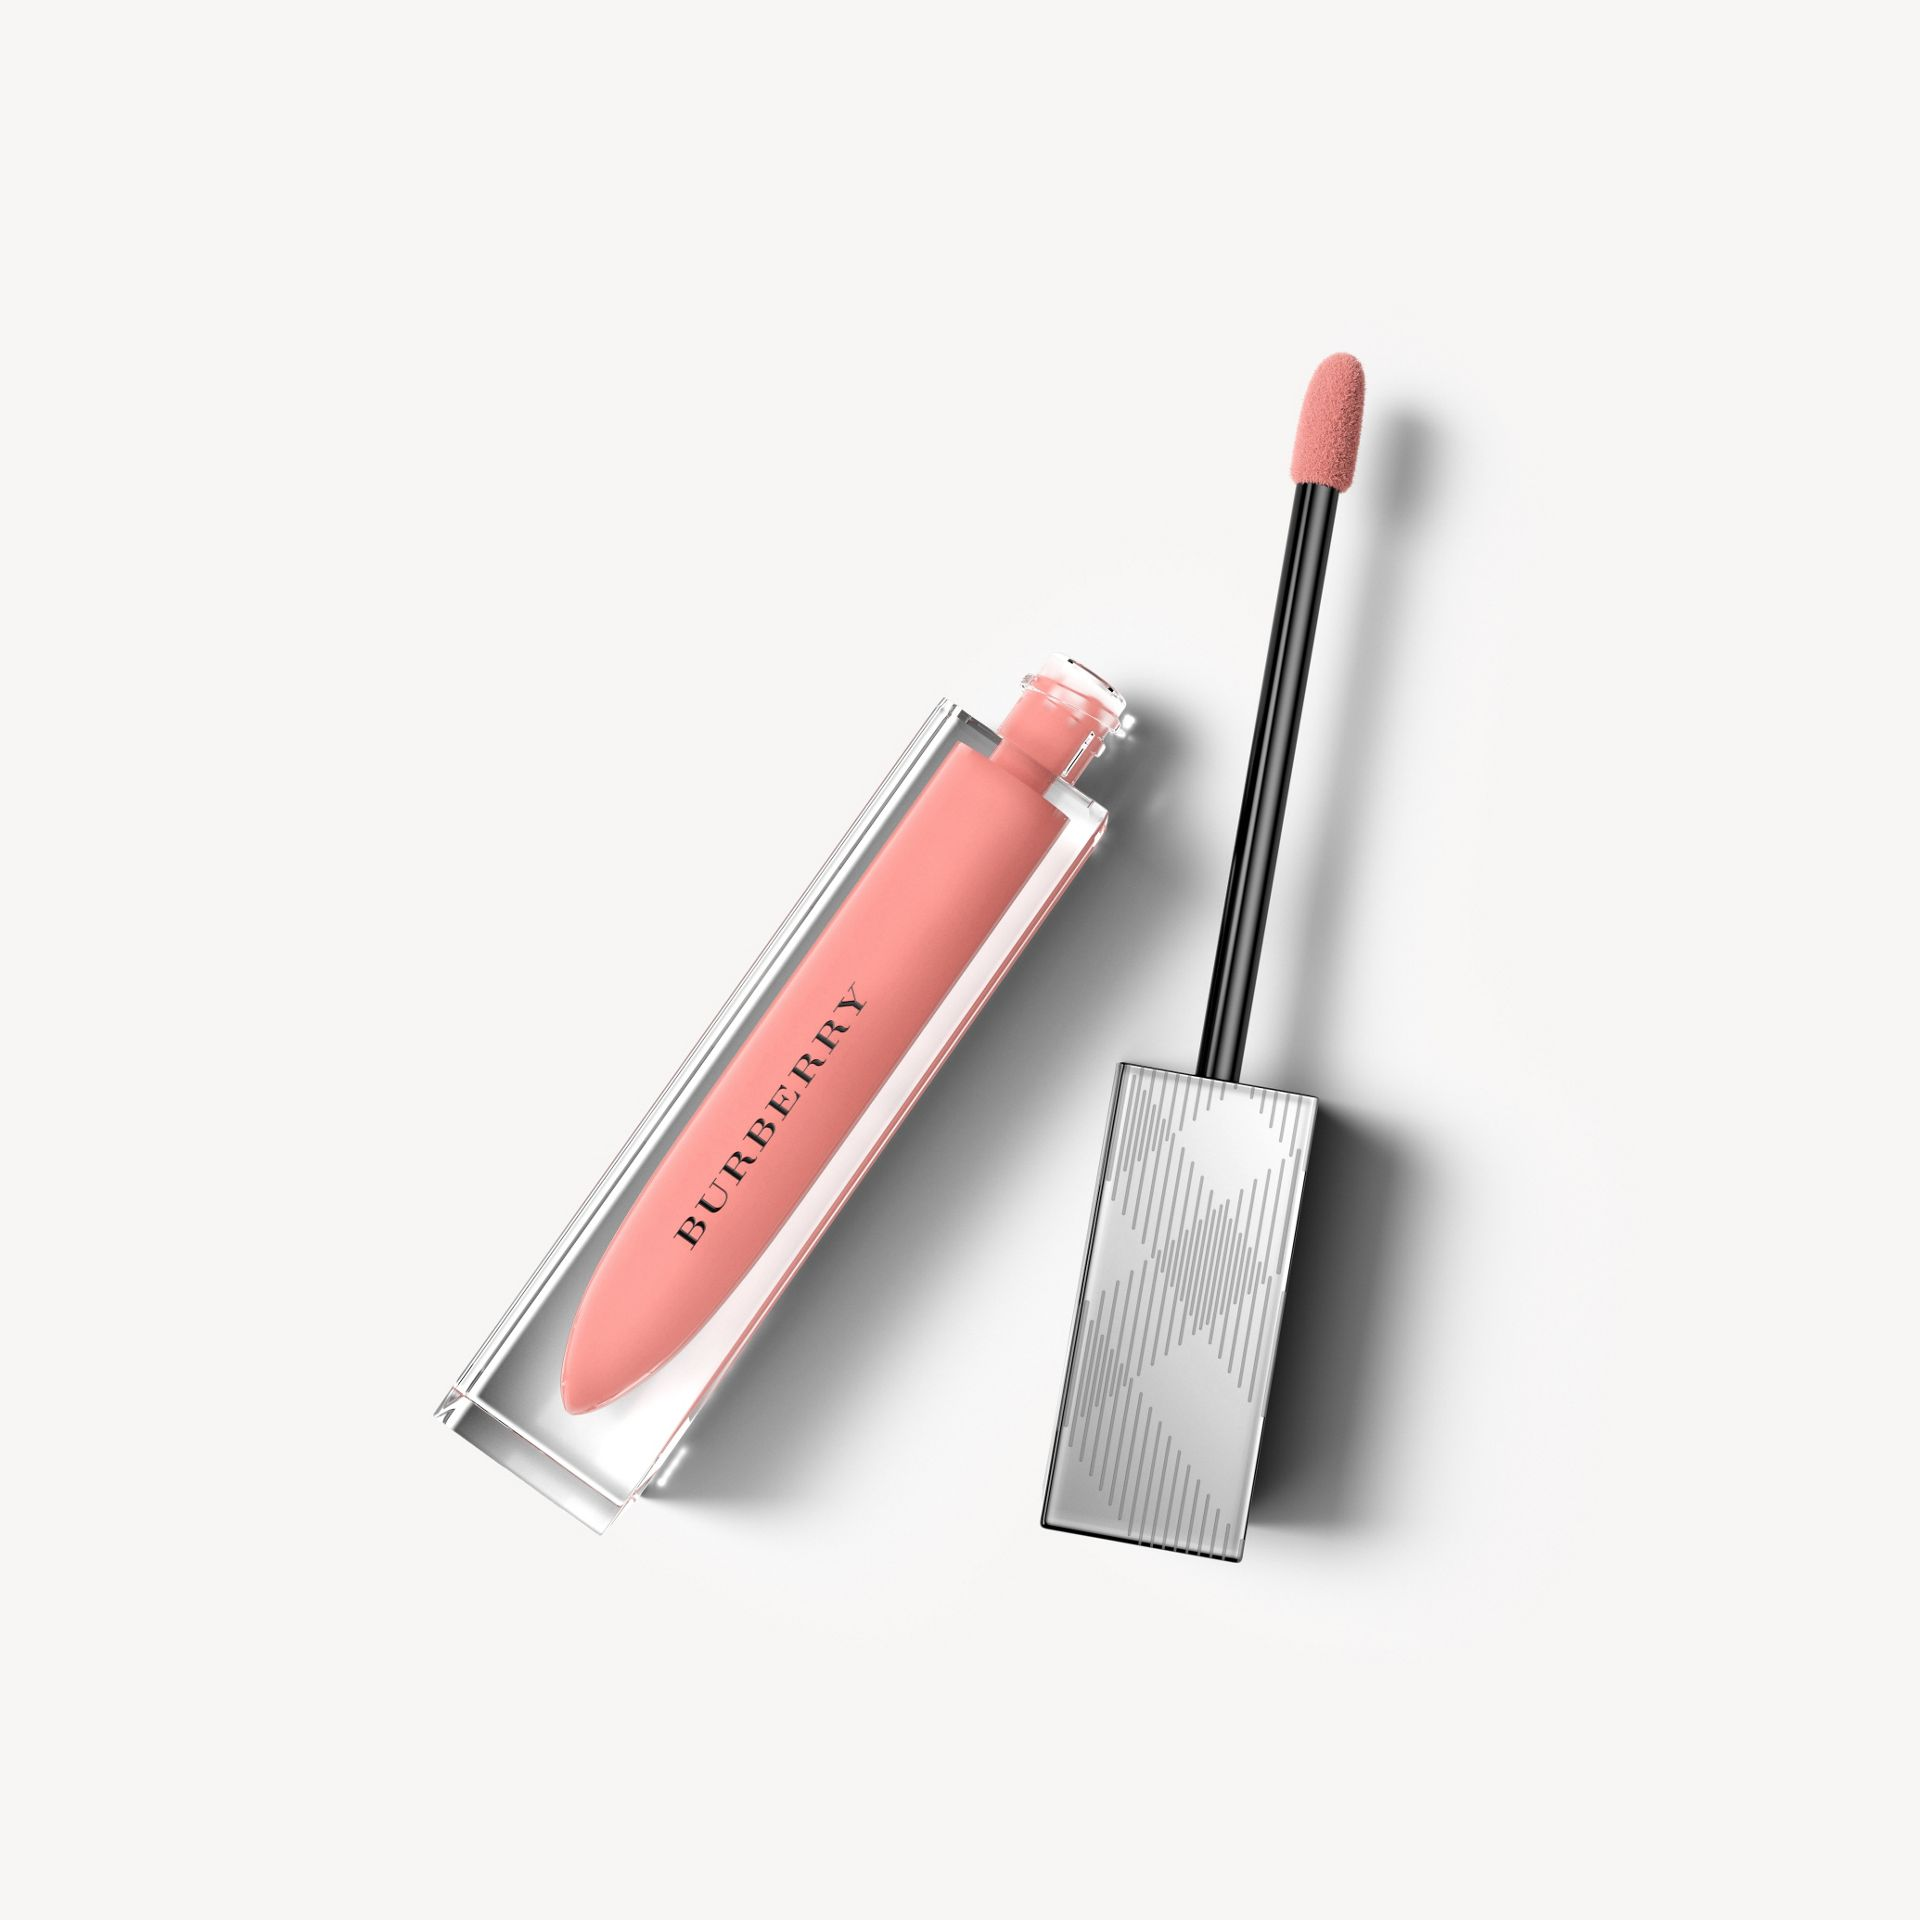 Tulip pink № 29 Блеск для губ Burberry Kisses Gloss, Tulip Pink № 29 - изображение 1